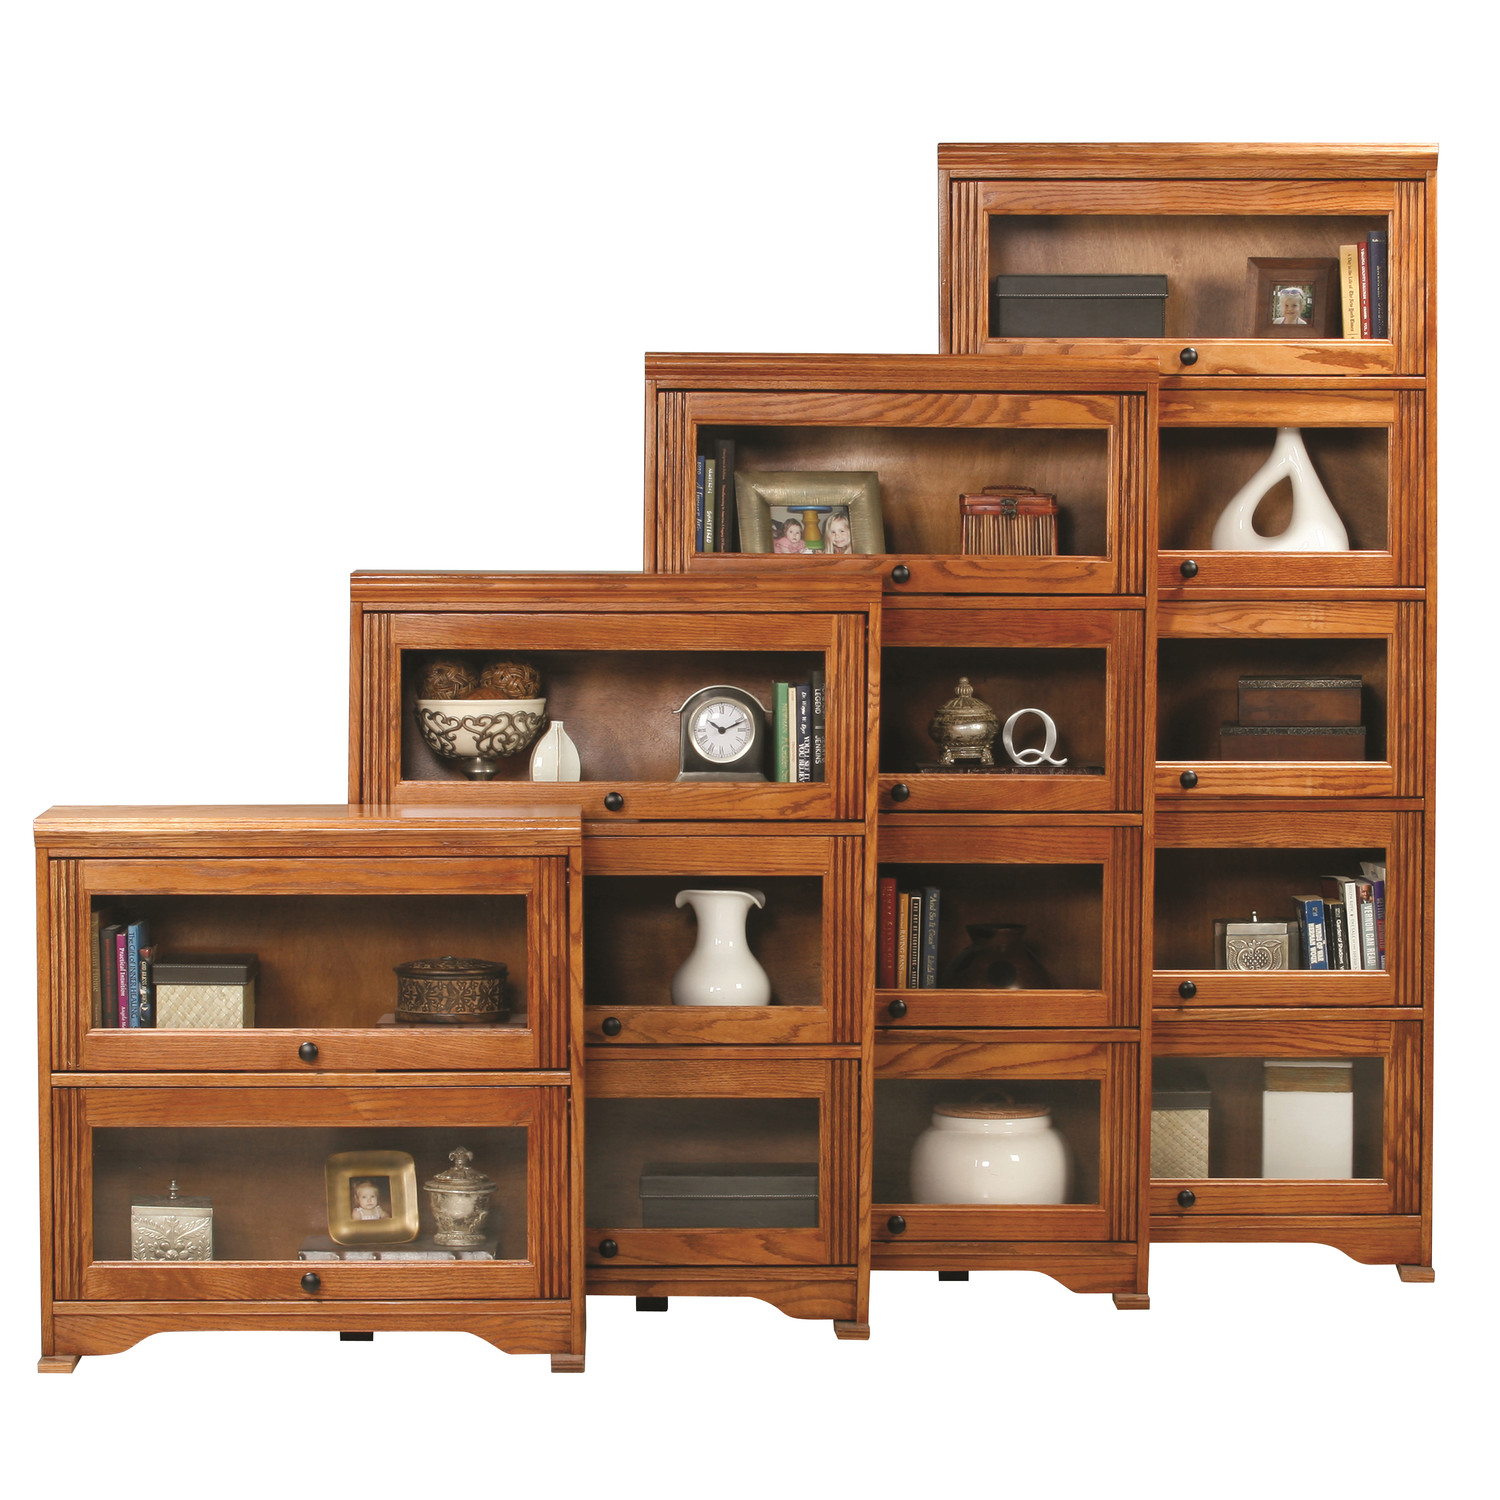 Image of: Lawyer Bookcase with Glass Doors